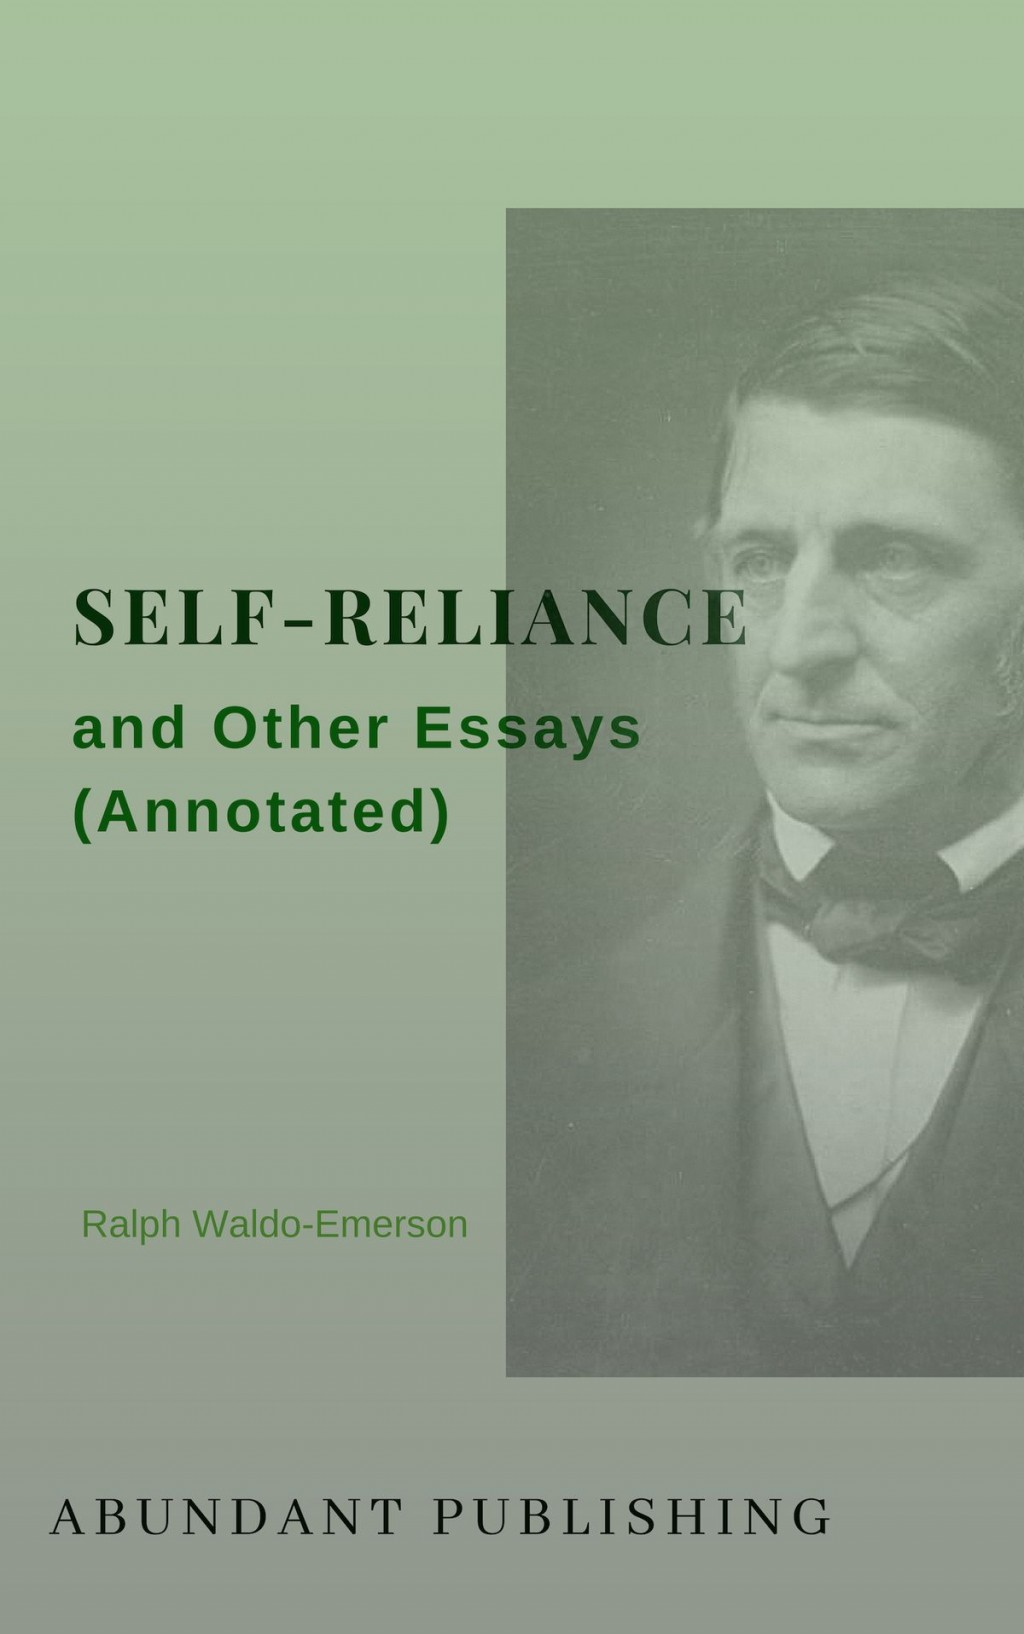 005 Self Reliance And Other Essays Annotated Essay Formidable Ralph Waldo Emerson Pdf Ekşi Large